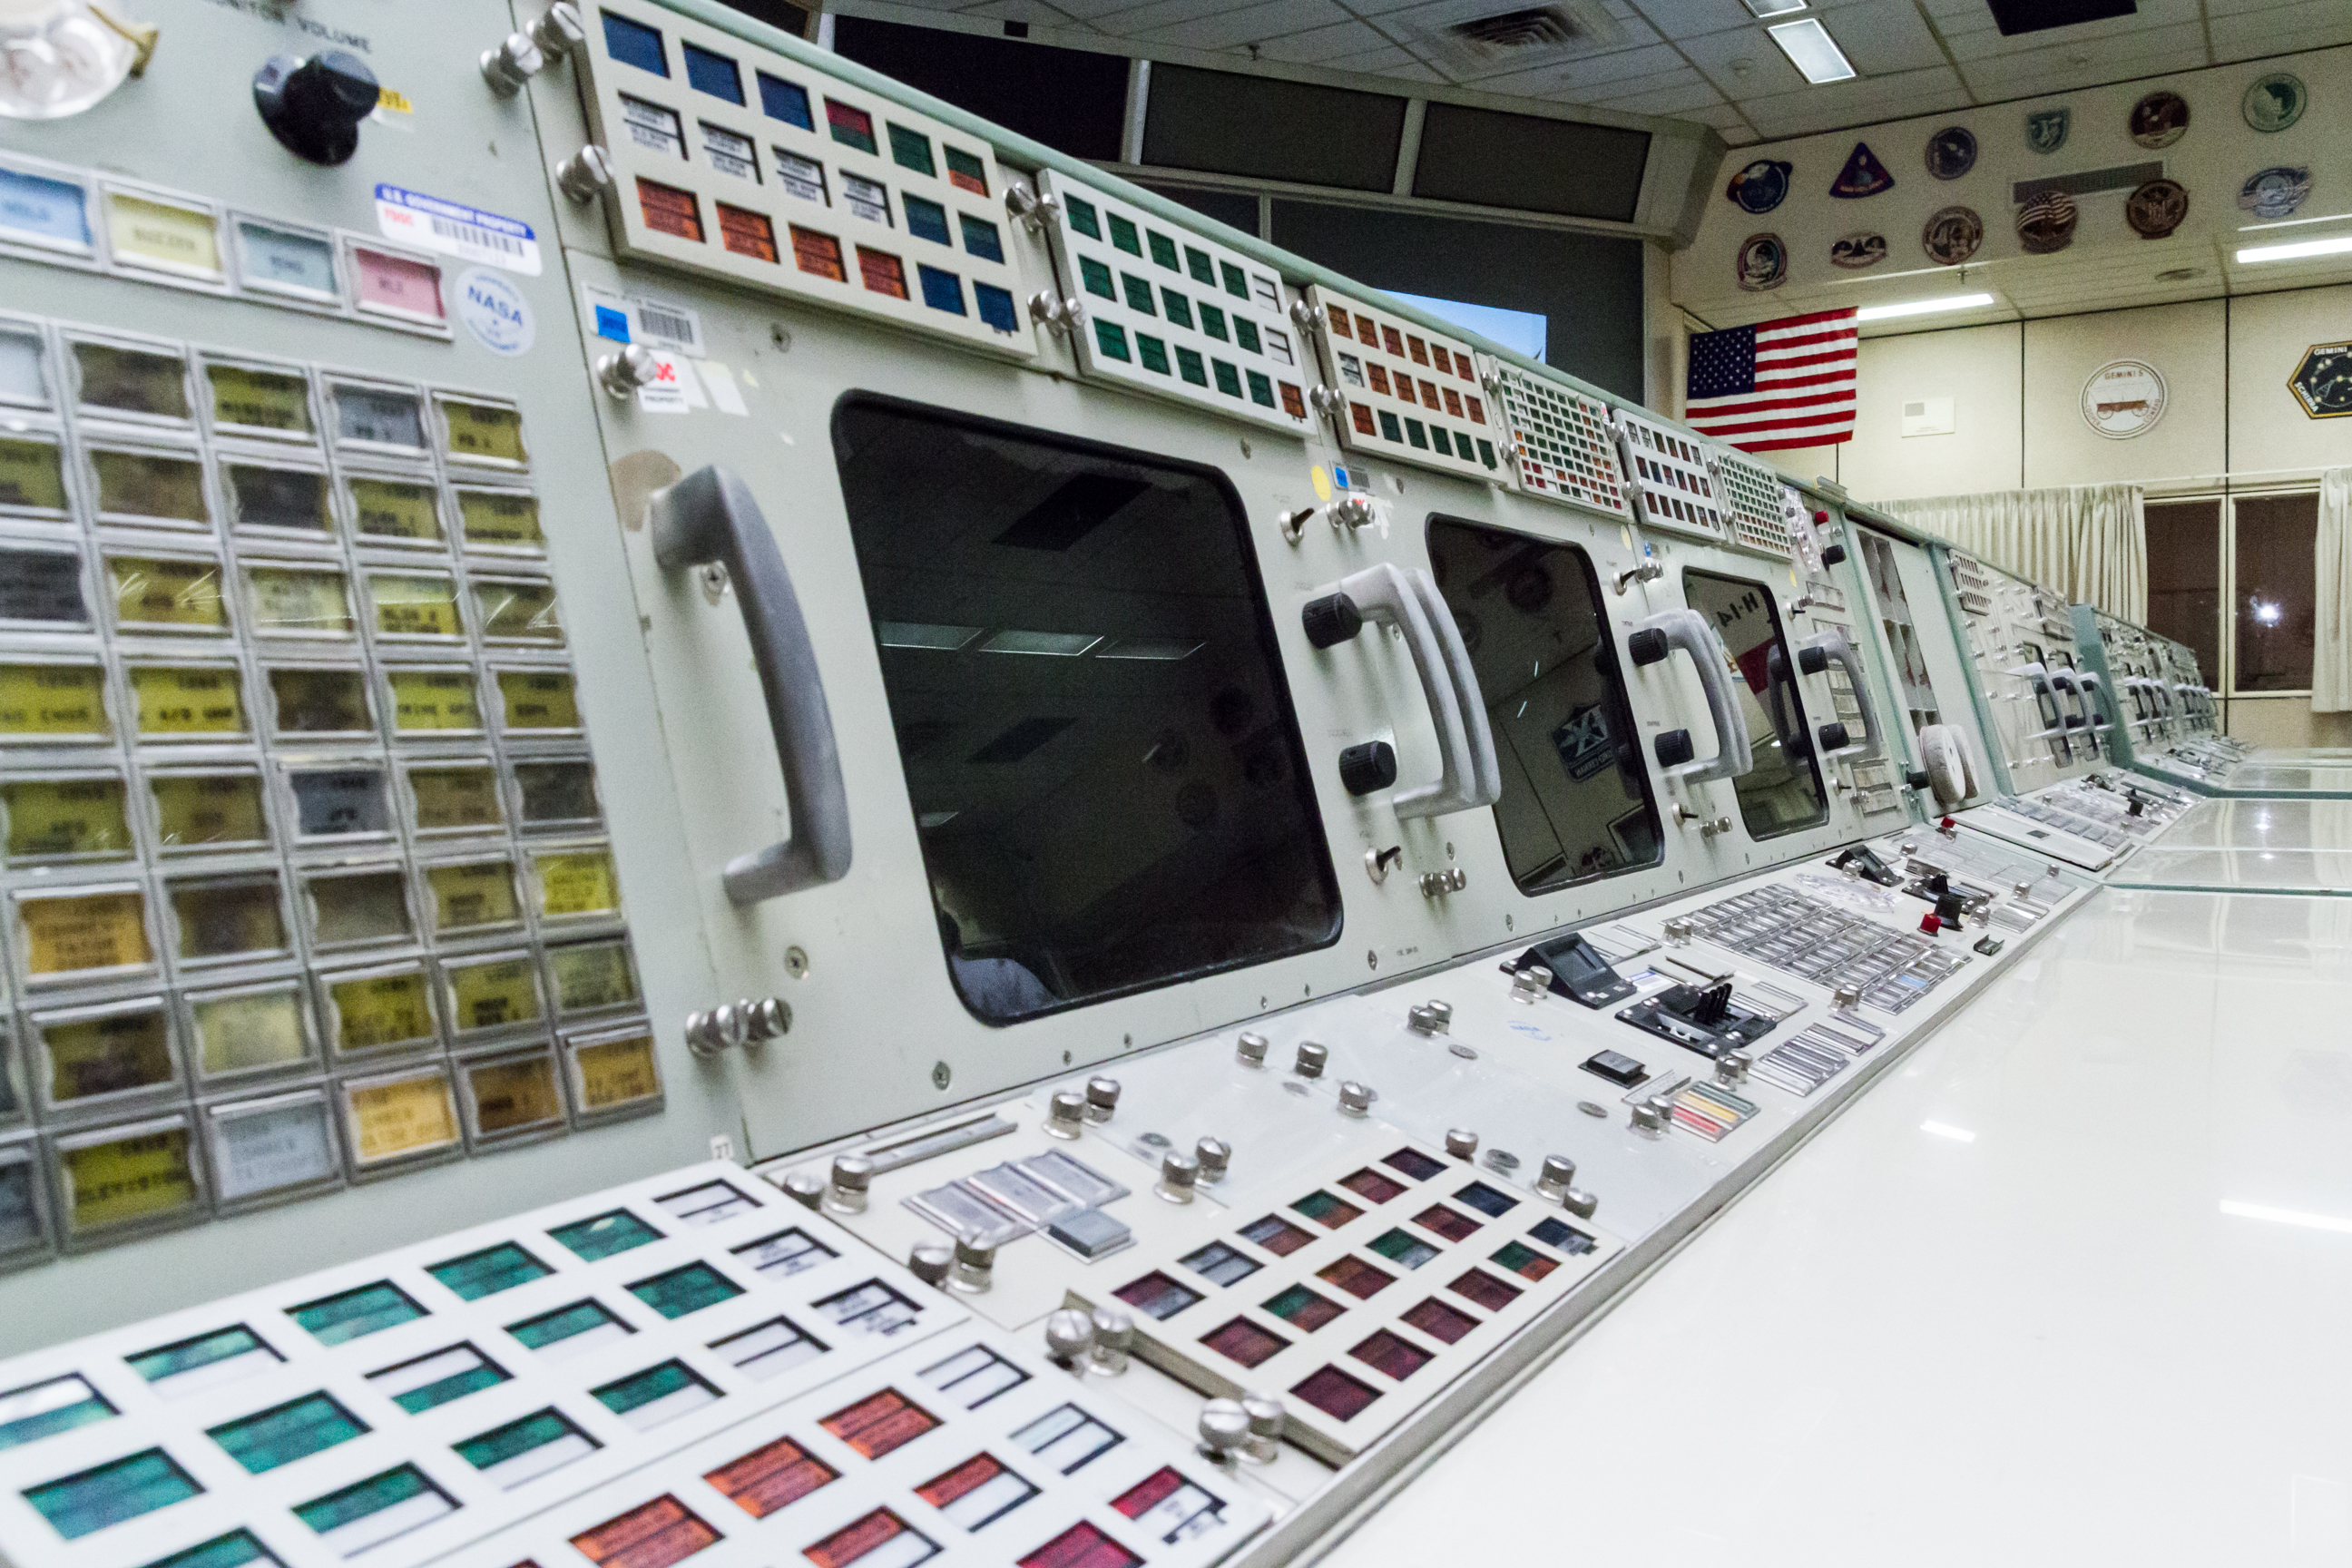 An image from the restored Mission Operations Control Room #2 as it exists today at the JSC in Houston.